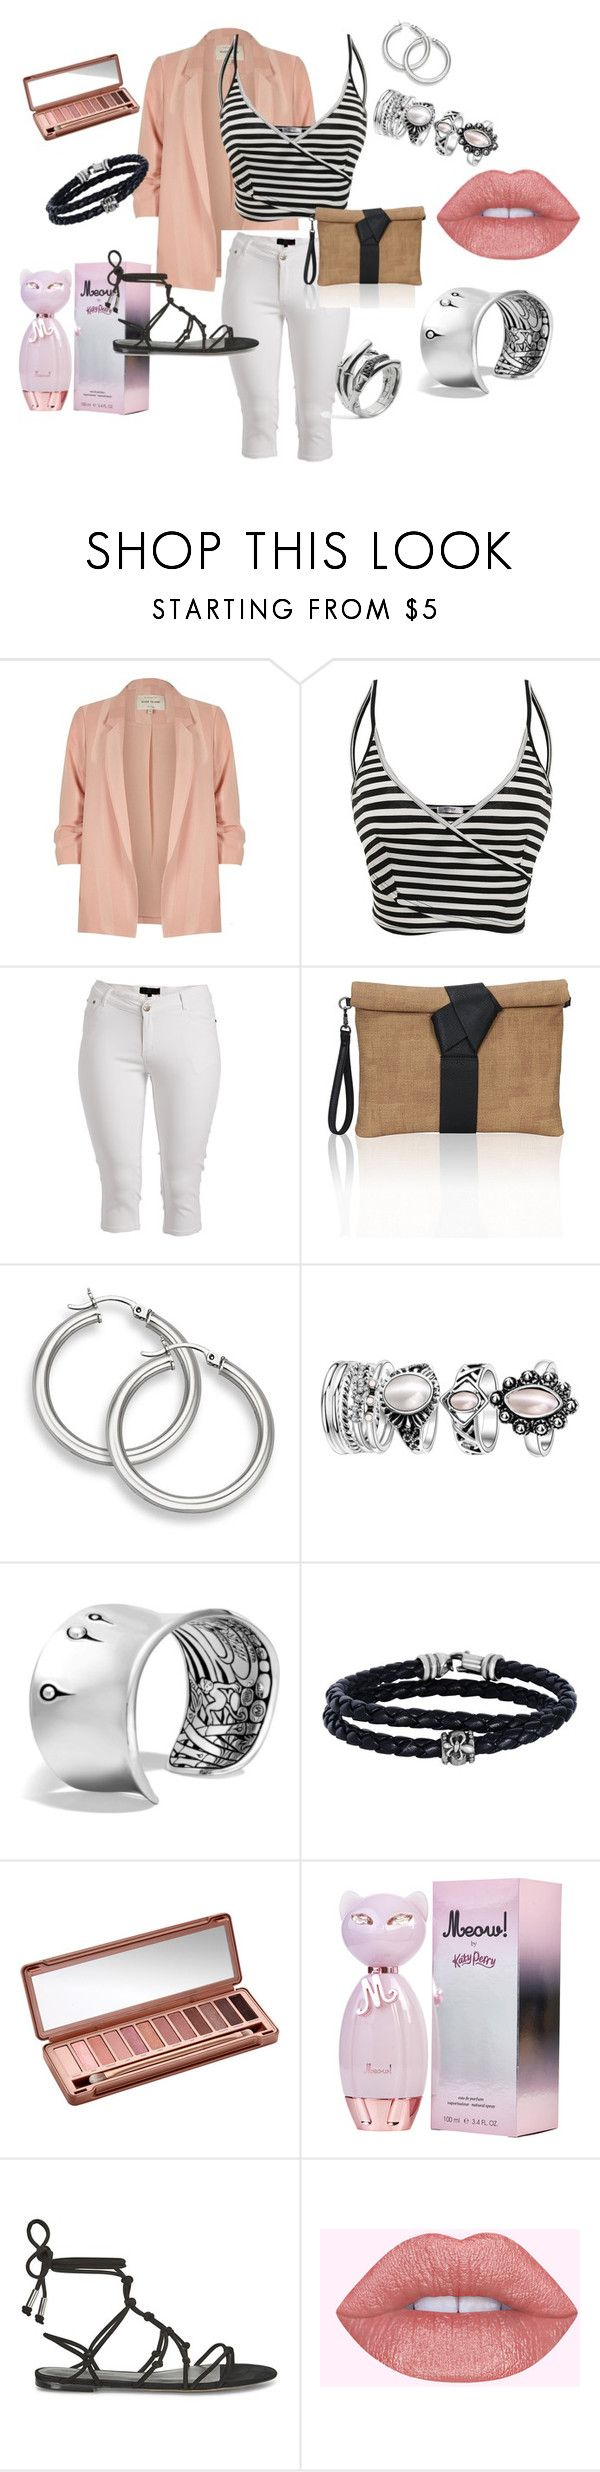 """Hidden Meaning"" by lheier on Polyvore featuring River Island, 1826 JEANS, John Hardy, Phillip Gavriel, Urban Decay and Rebecca Minkoff"